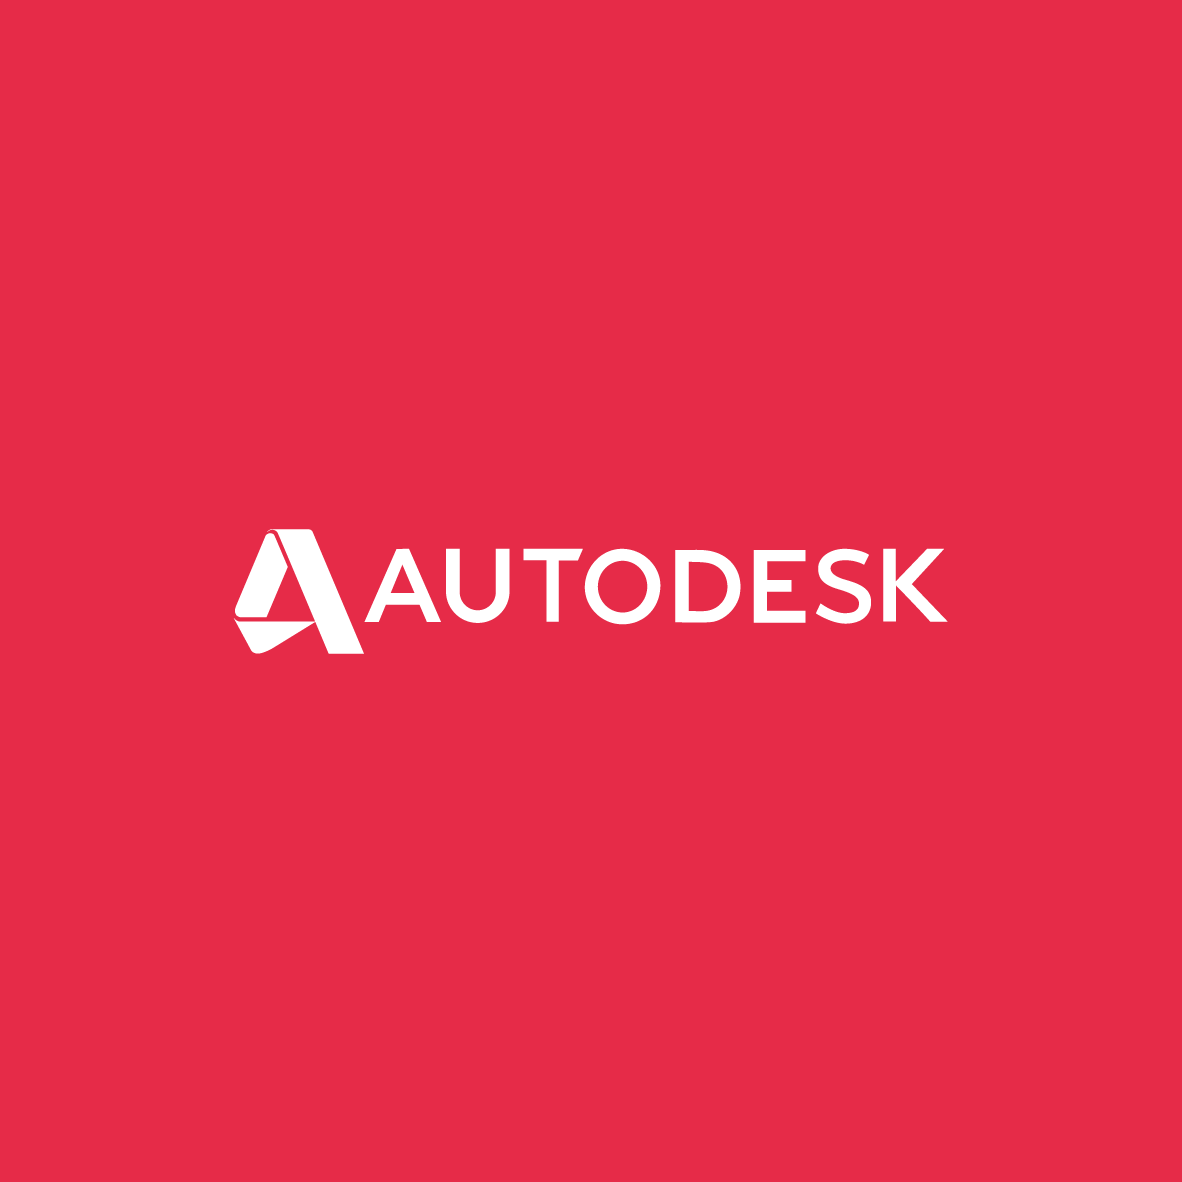 06_AUTODESK.png